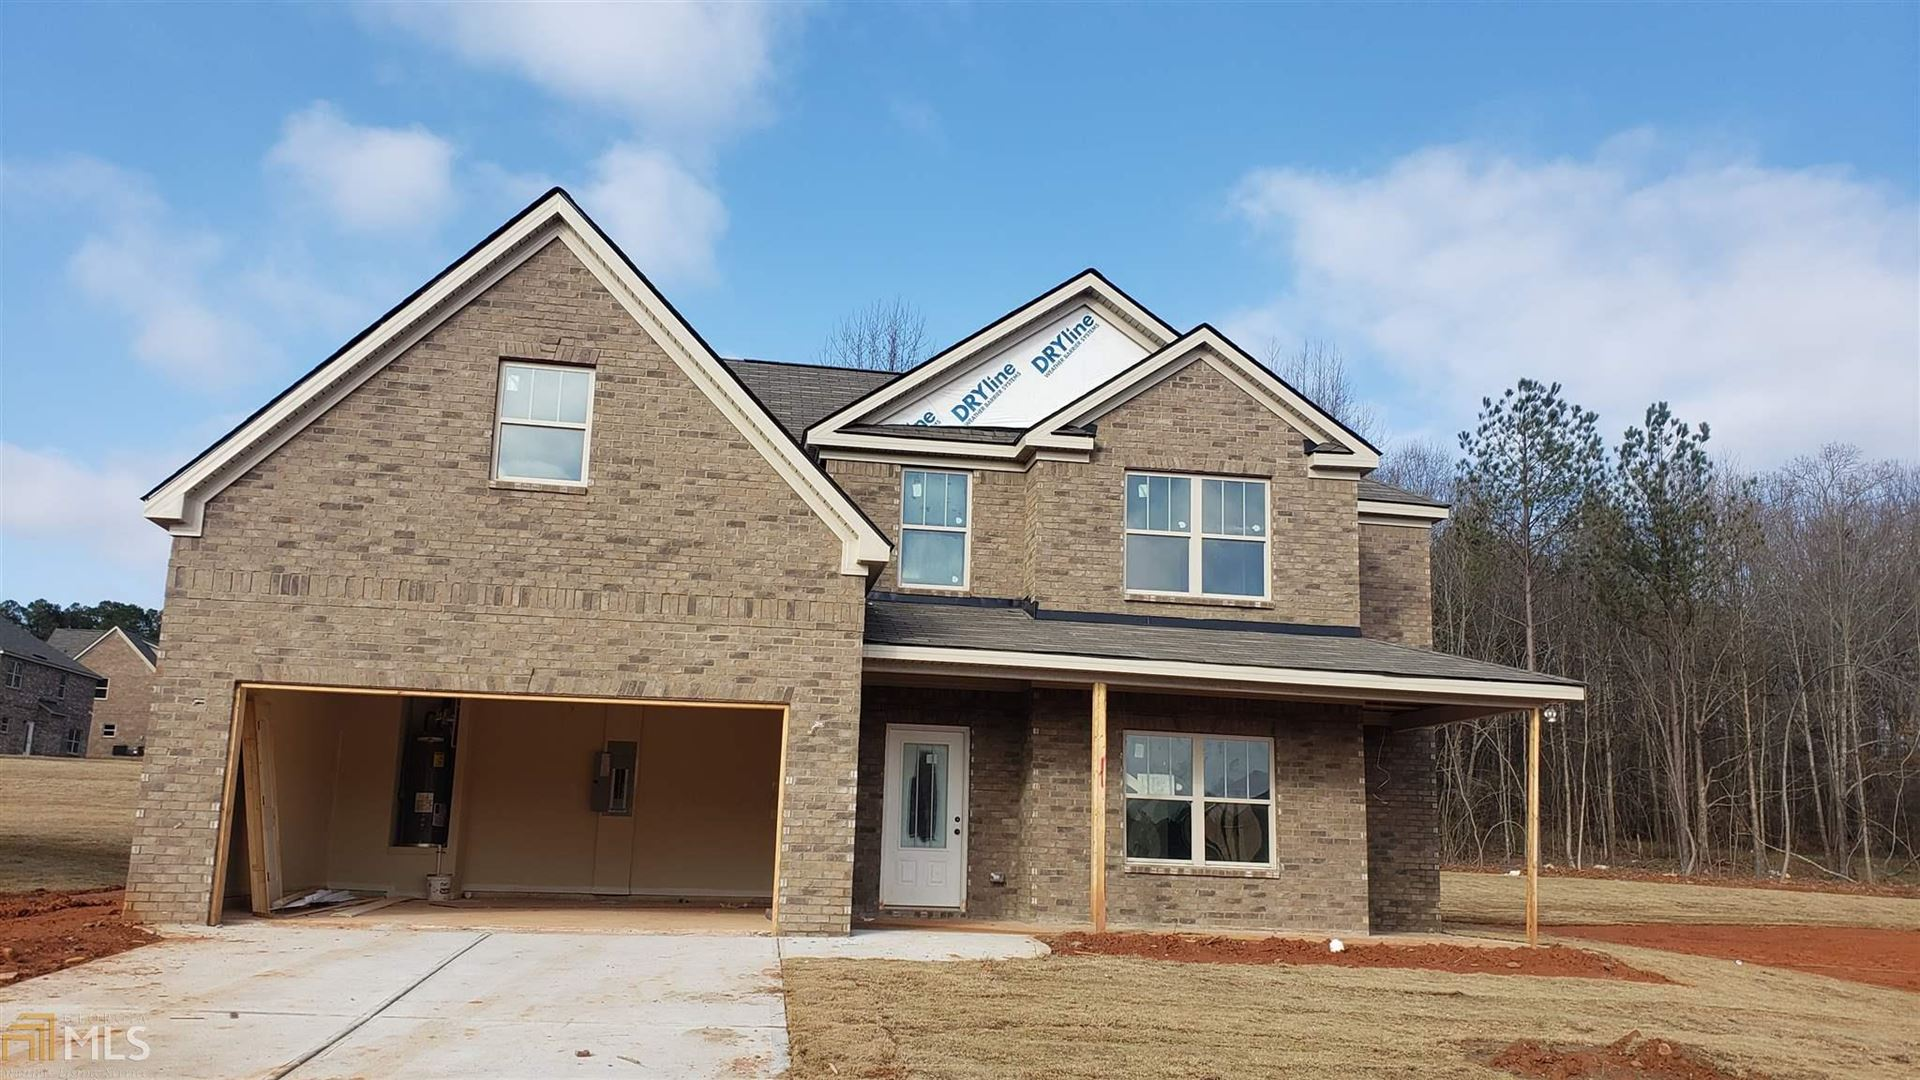 509 Ponce Cir, Ellenwood, GA 30294 - MLS#: 8840663